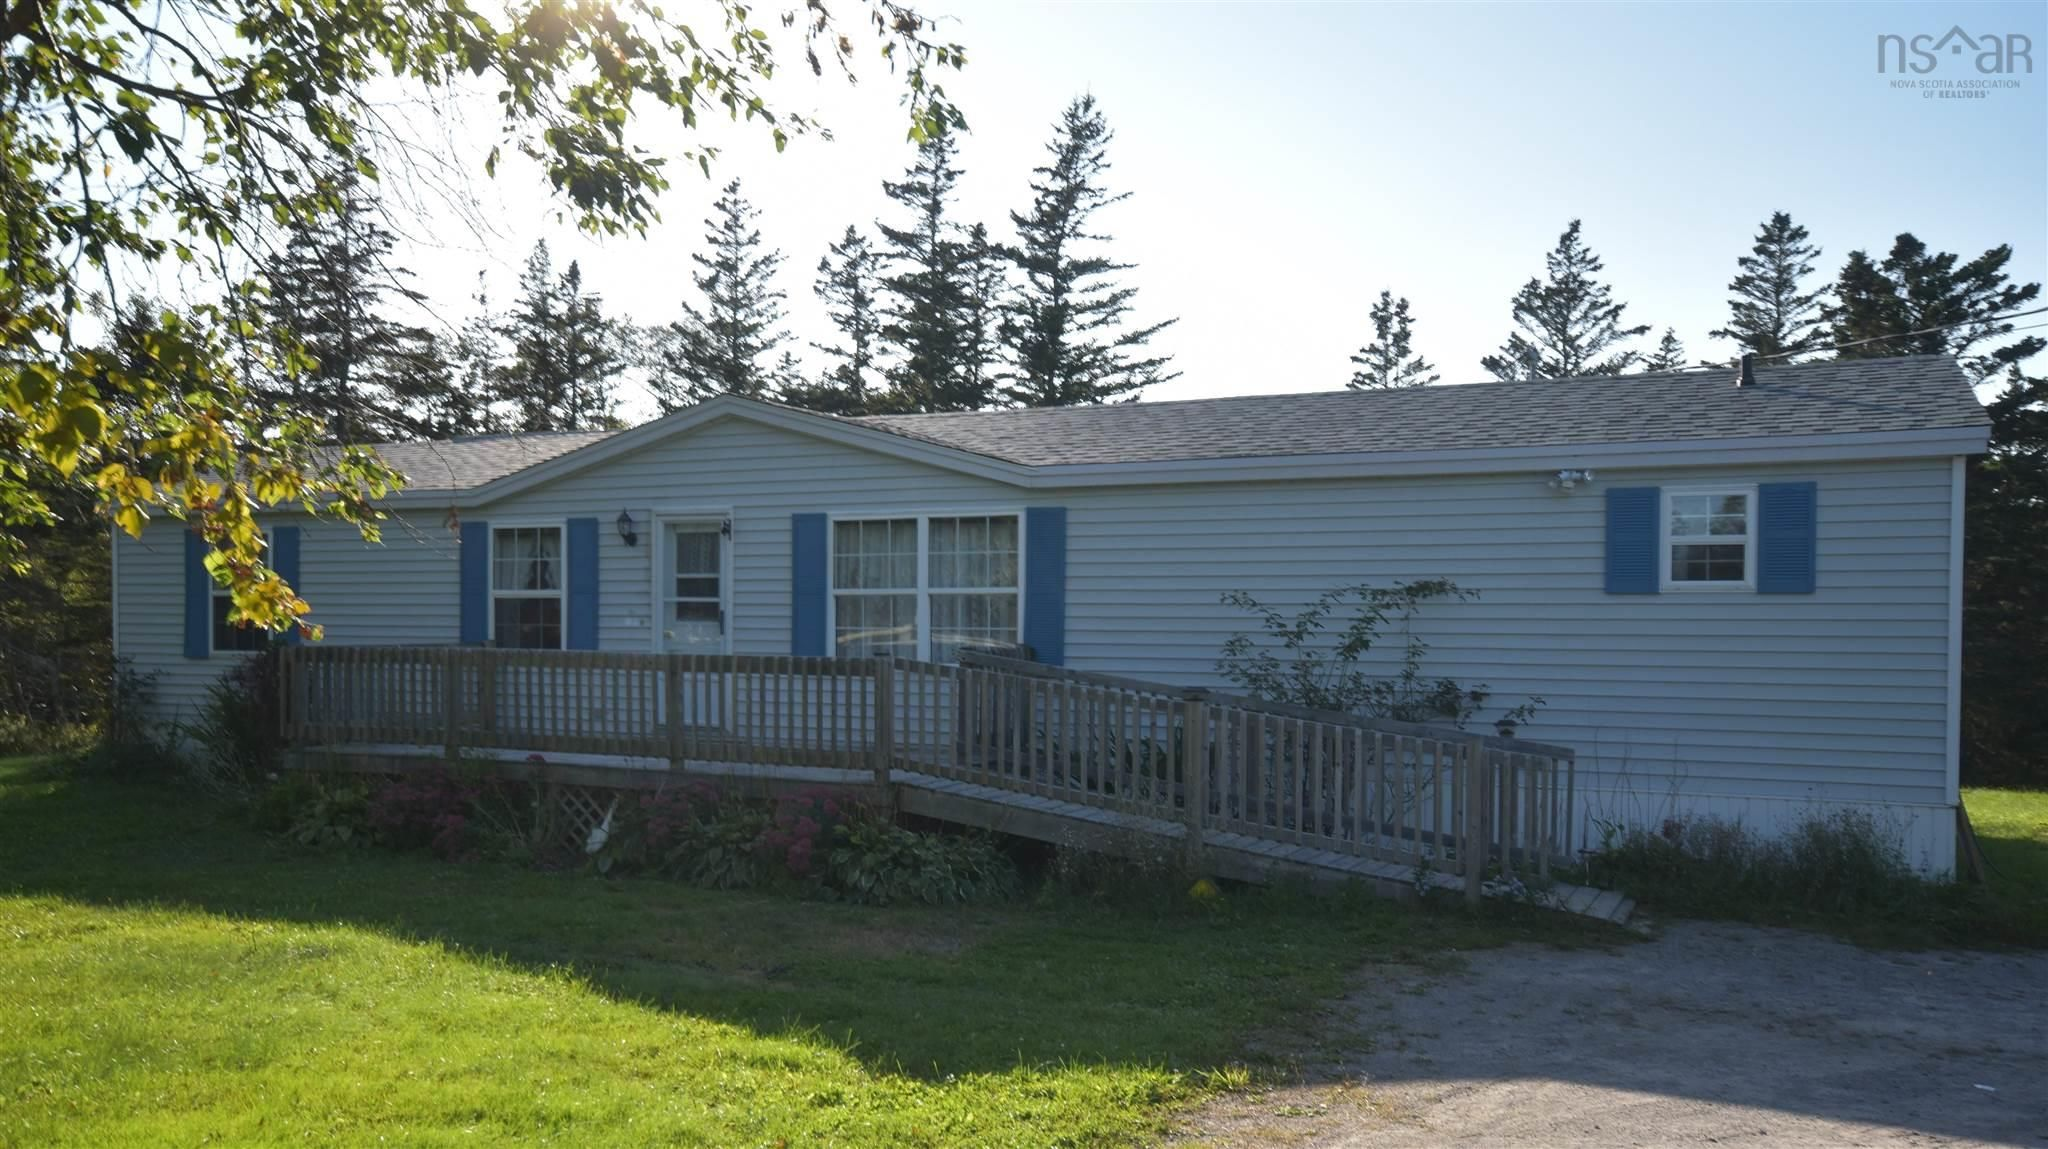 Main Photo: 2555 Highway 362 in Margaretsville: 400-Annapolis County Residential for sale (Annapolis Valley)  : MLS®# 202124335